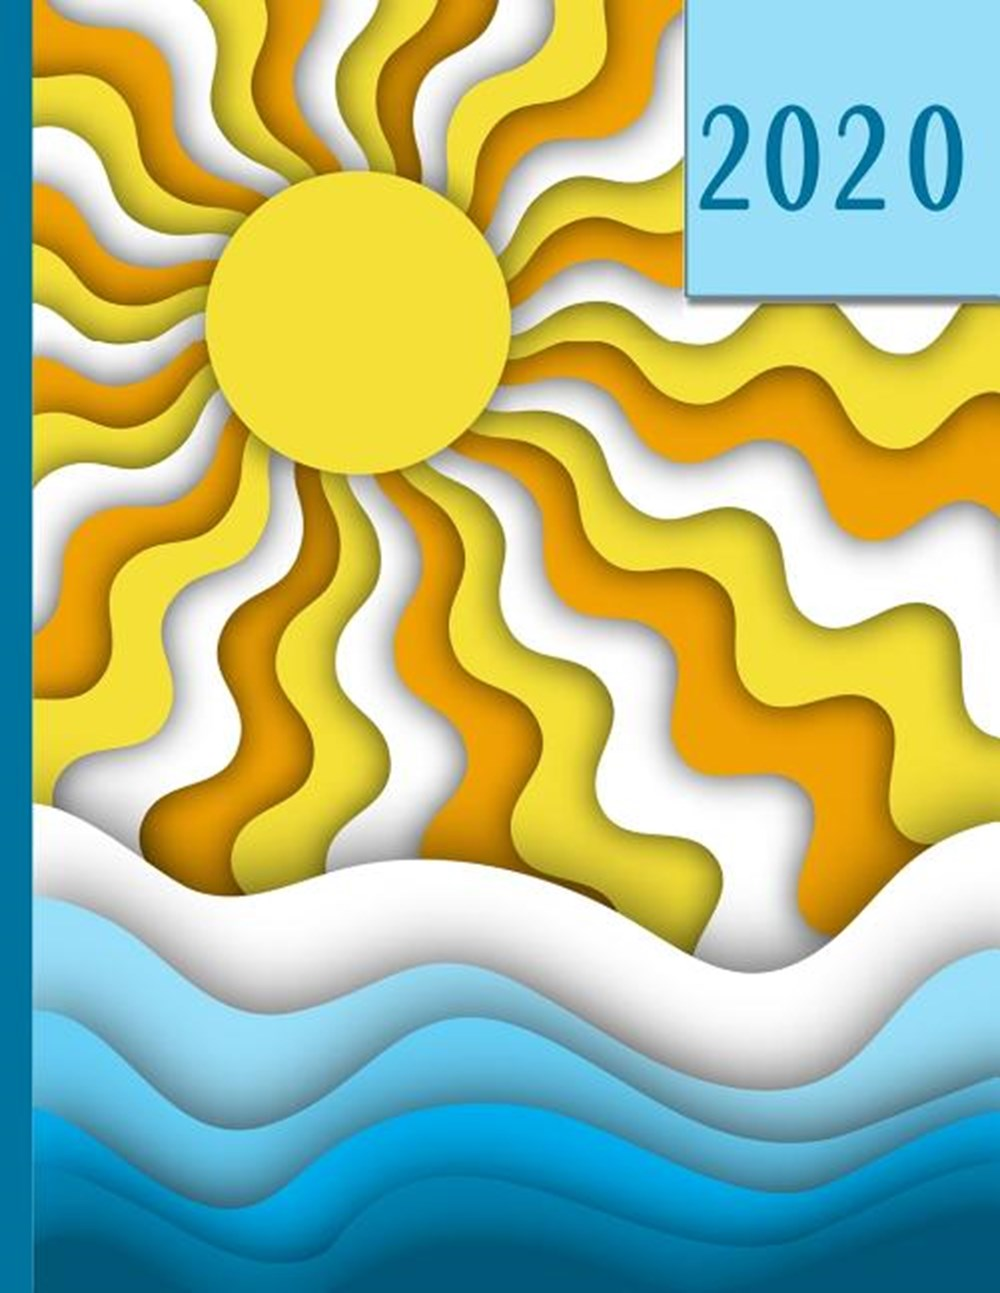 Fun in the Sun Paper Cutout - Boats on the Water 2020 Schedule Planner and Organizer / Weekly Calend